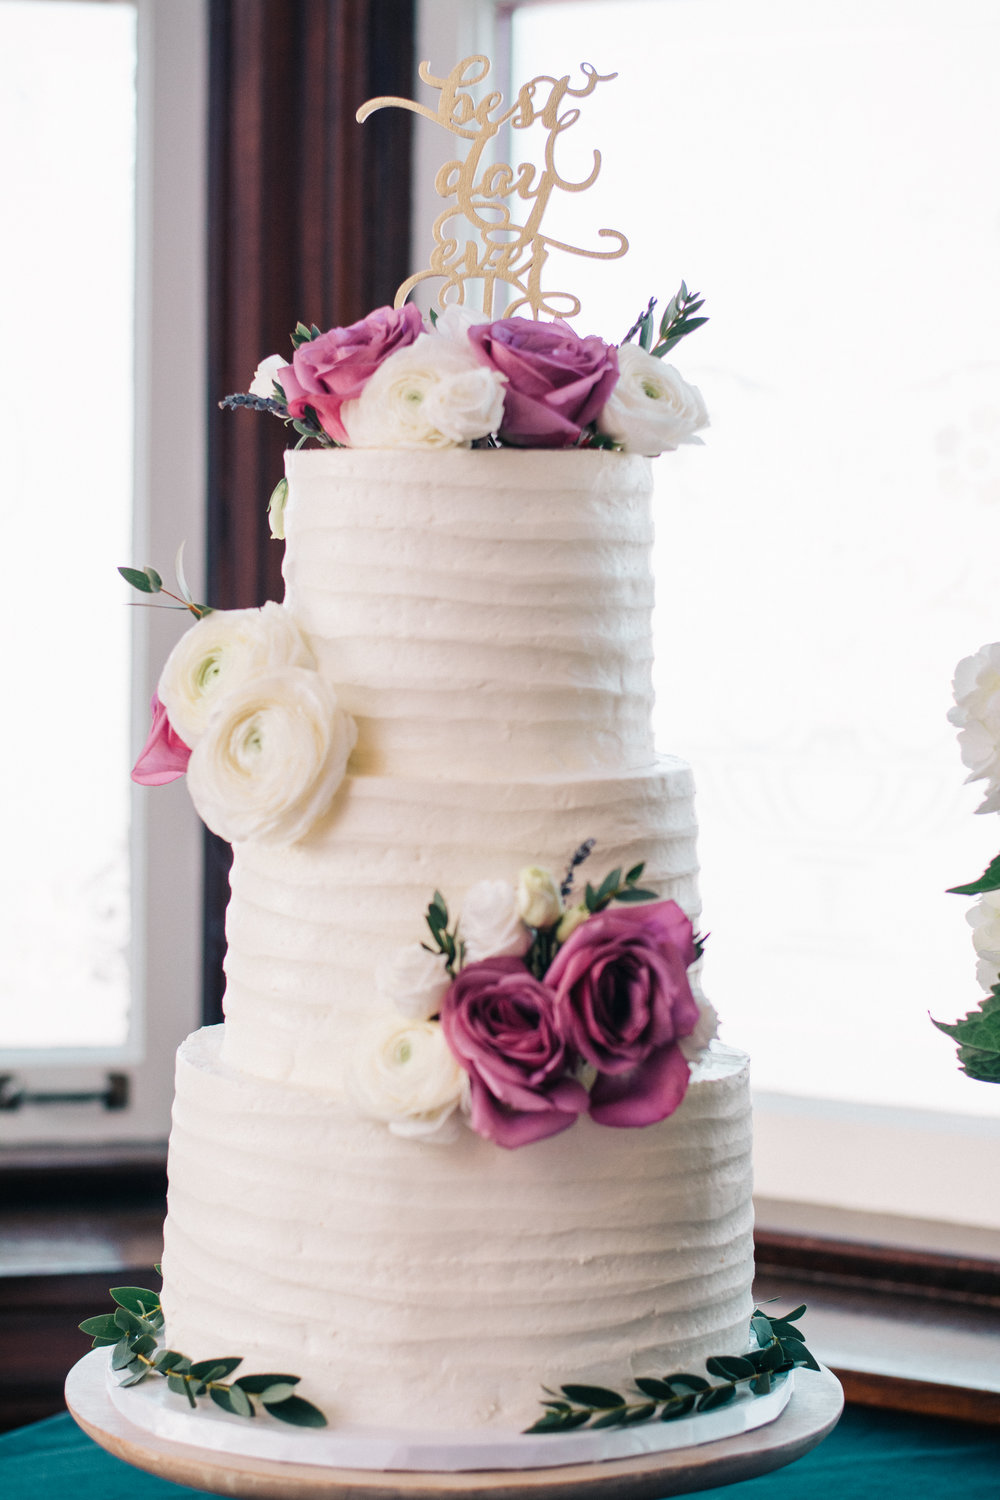 Sydney's sister and maid-of-honour made a surprise wedding cake!